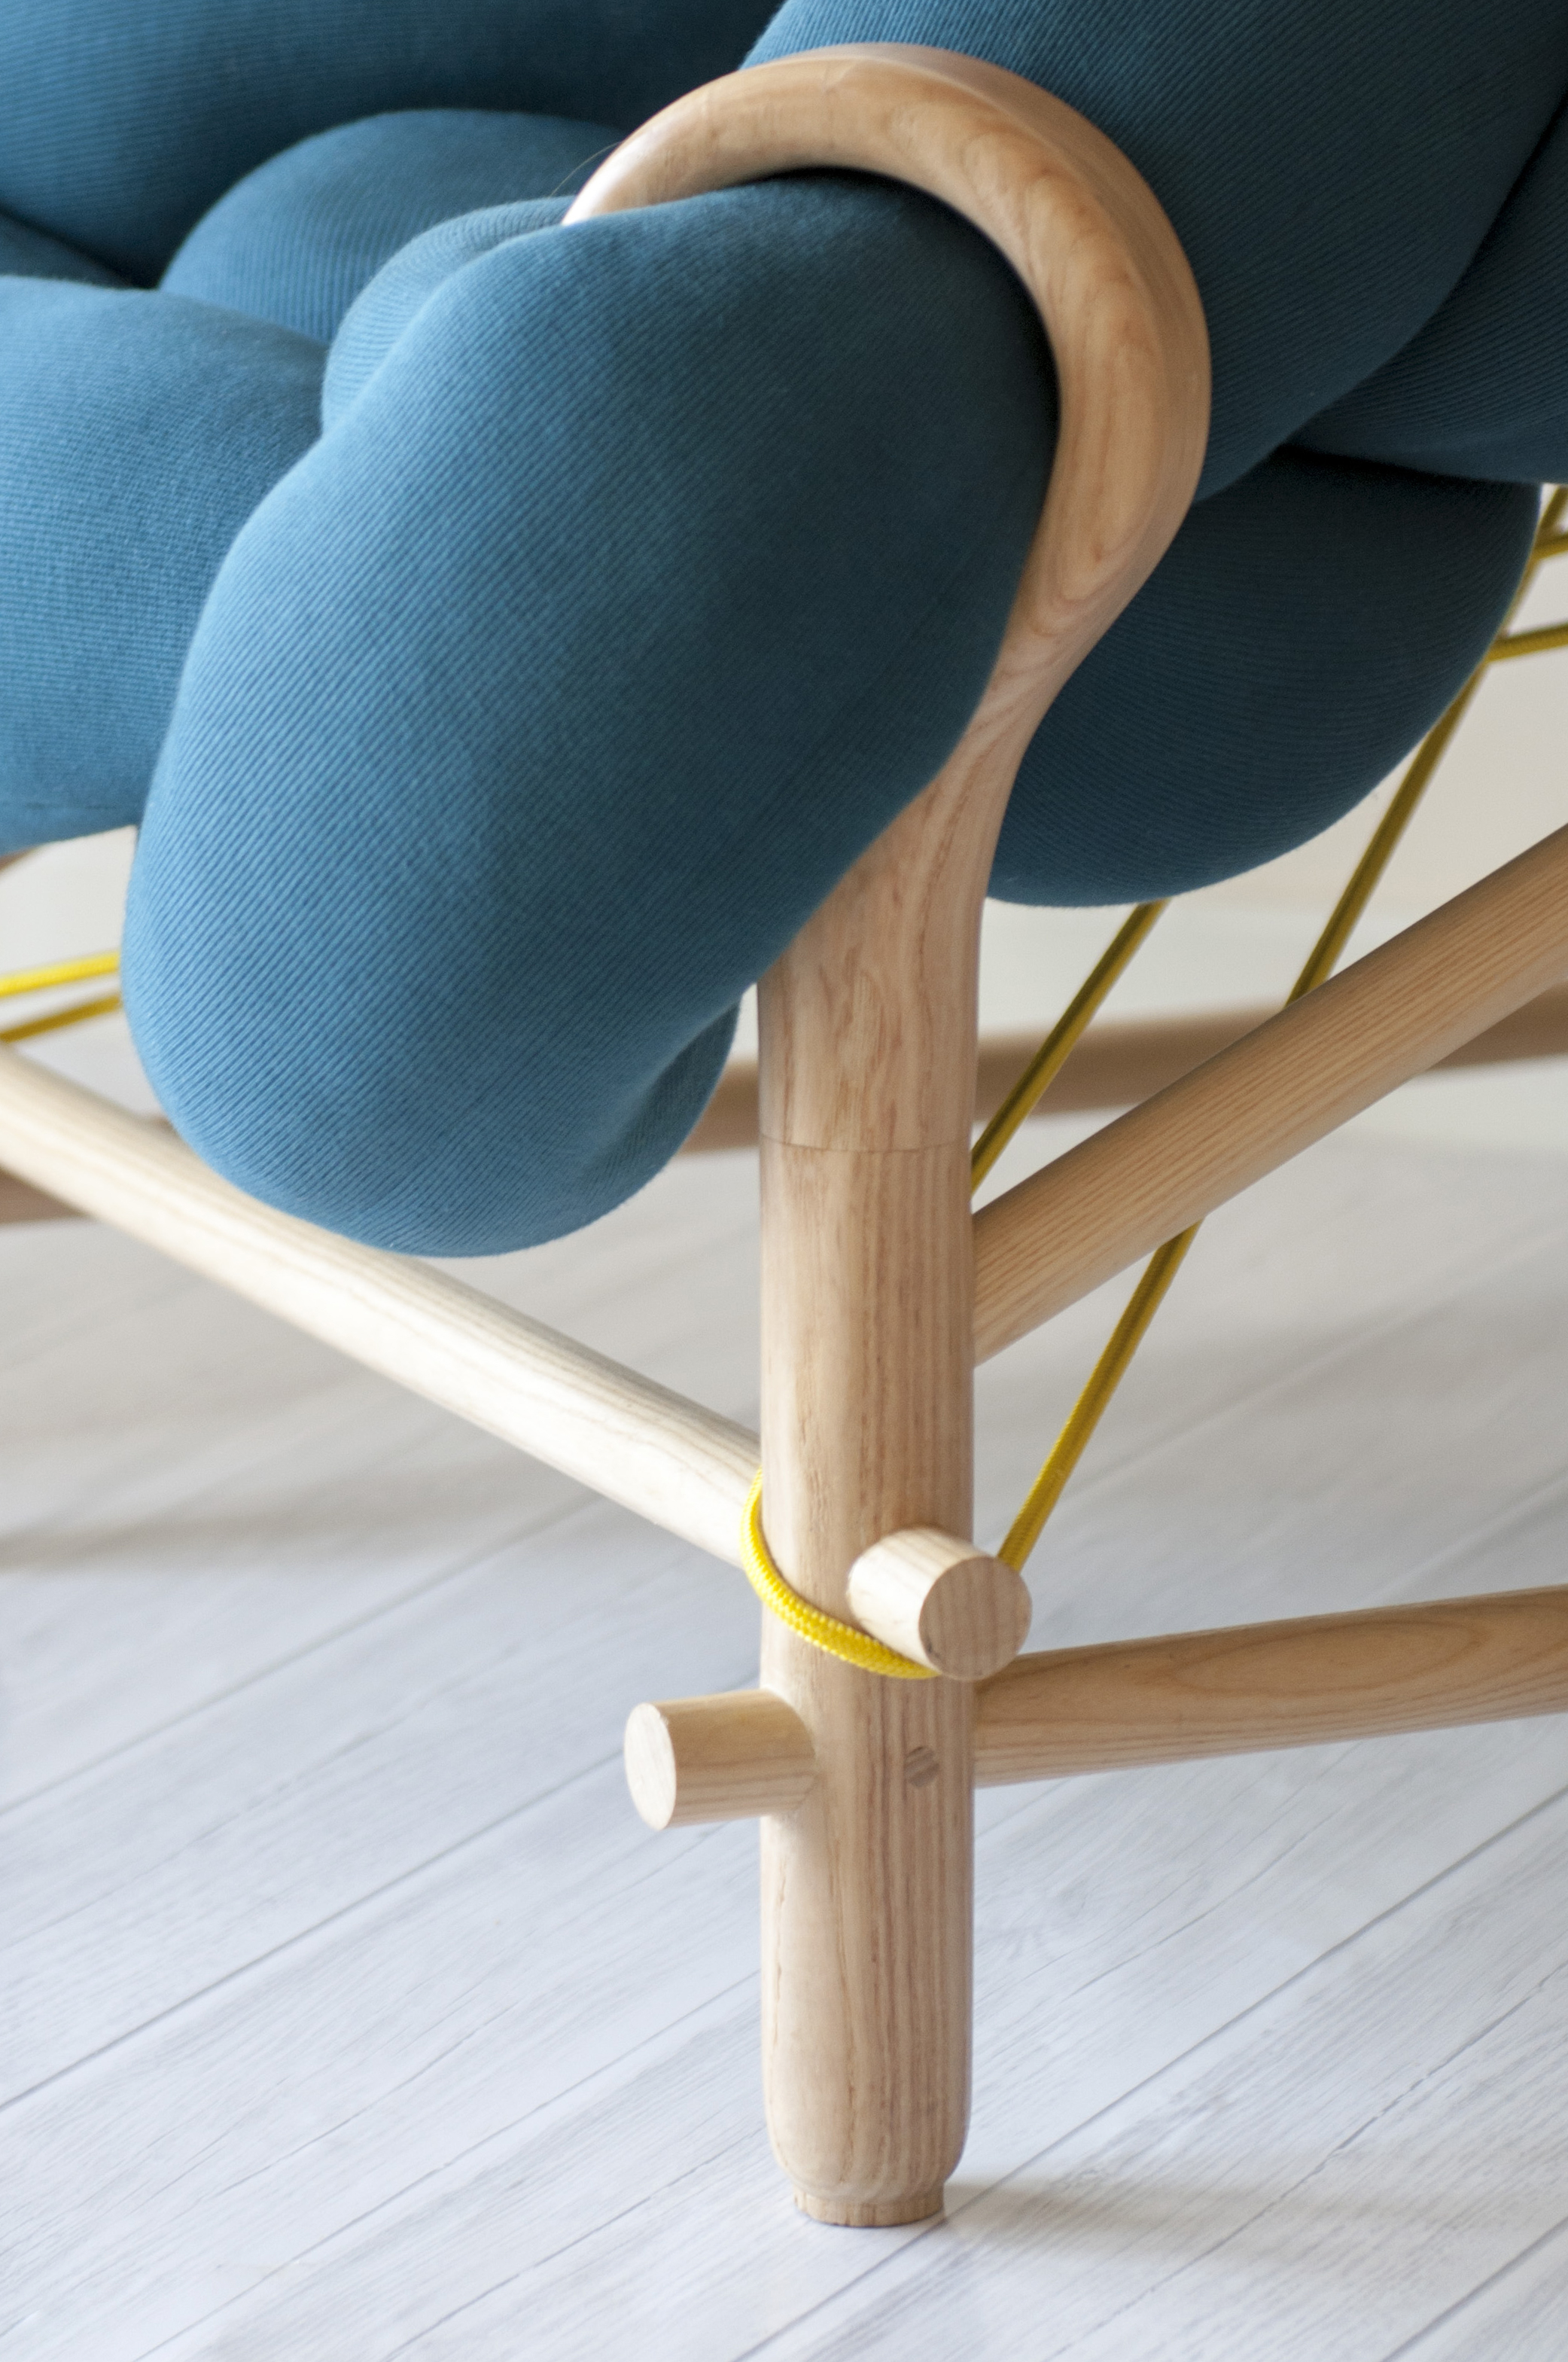 A2 Live Shot, Neddle Chair, veegadesign, C-D31.jpg